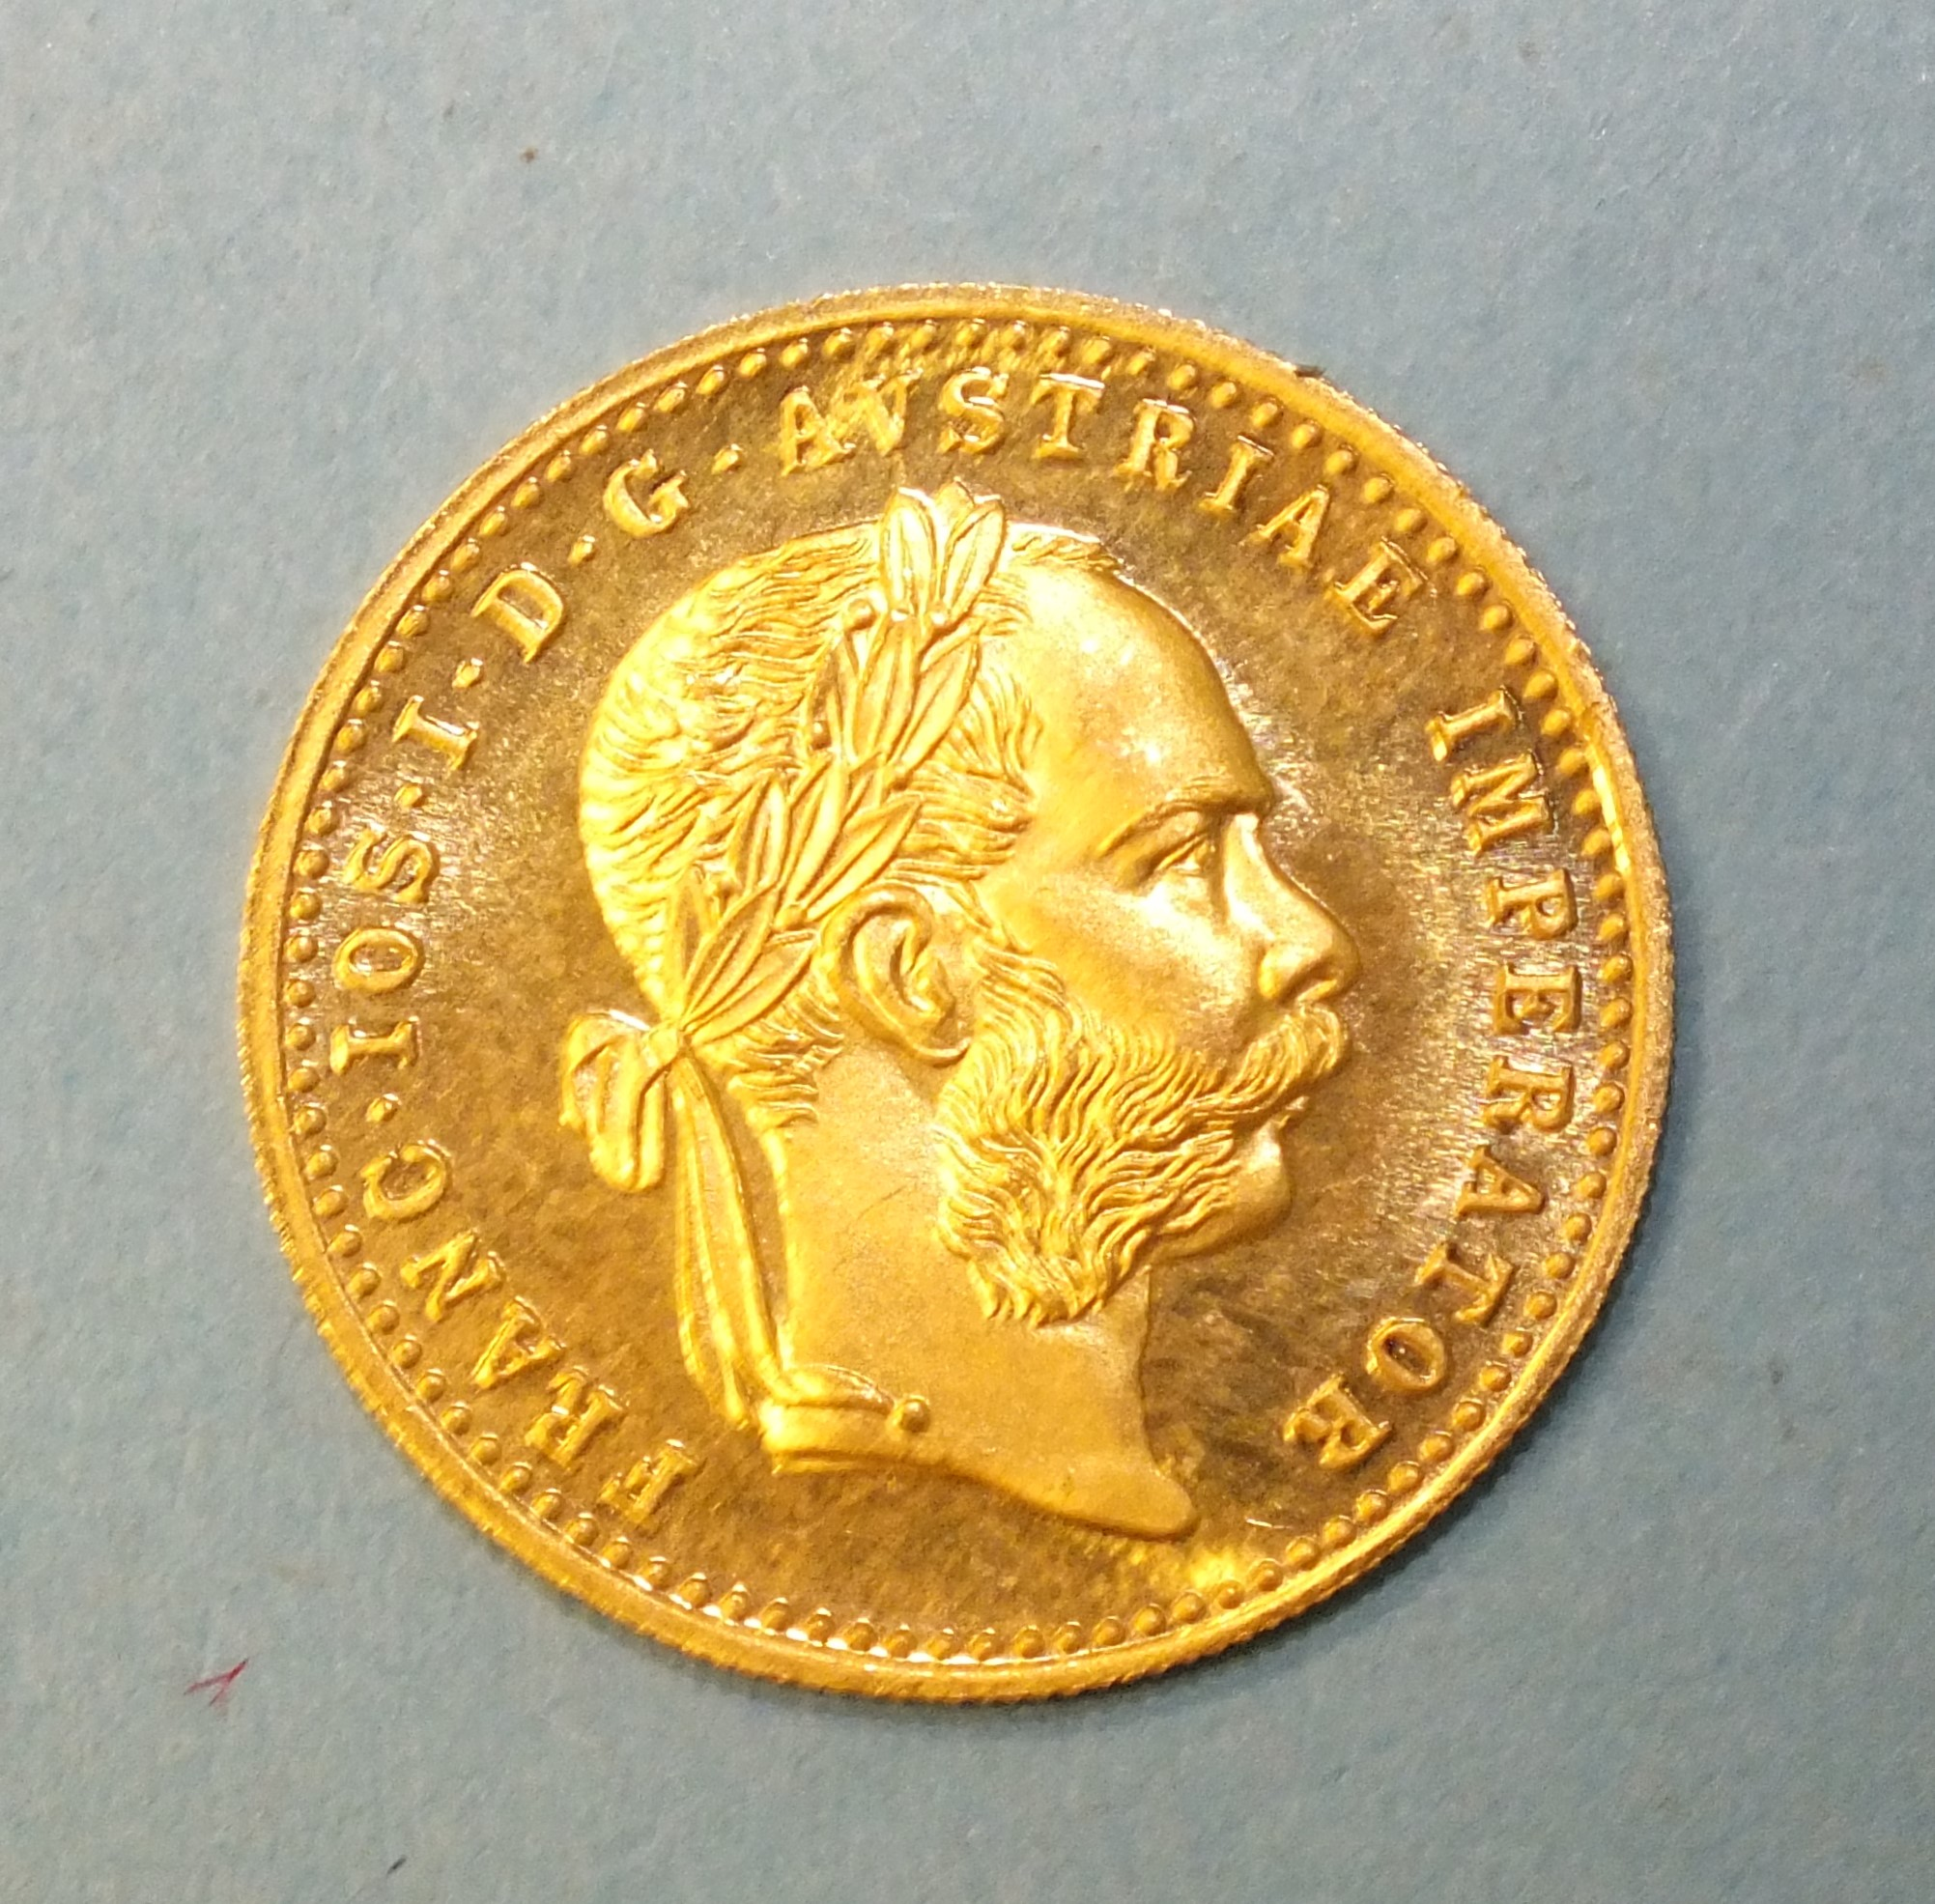 A 1915 Austria 1-ducat gold coin, 3.5g. - Image 2 of 2